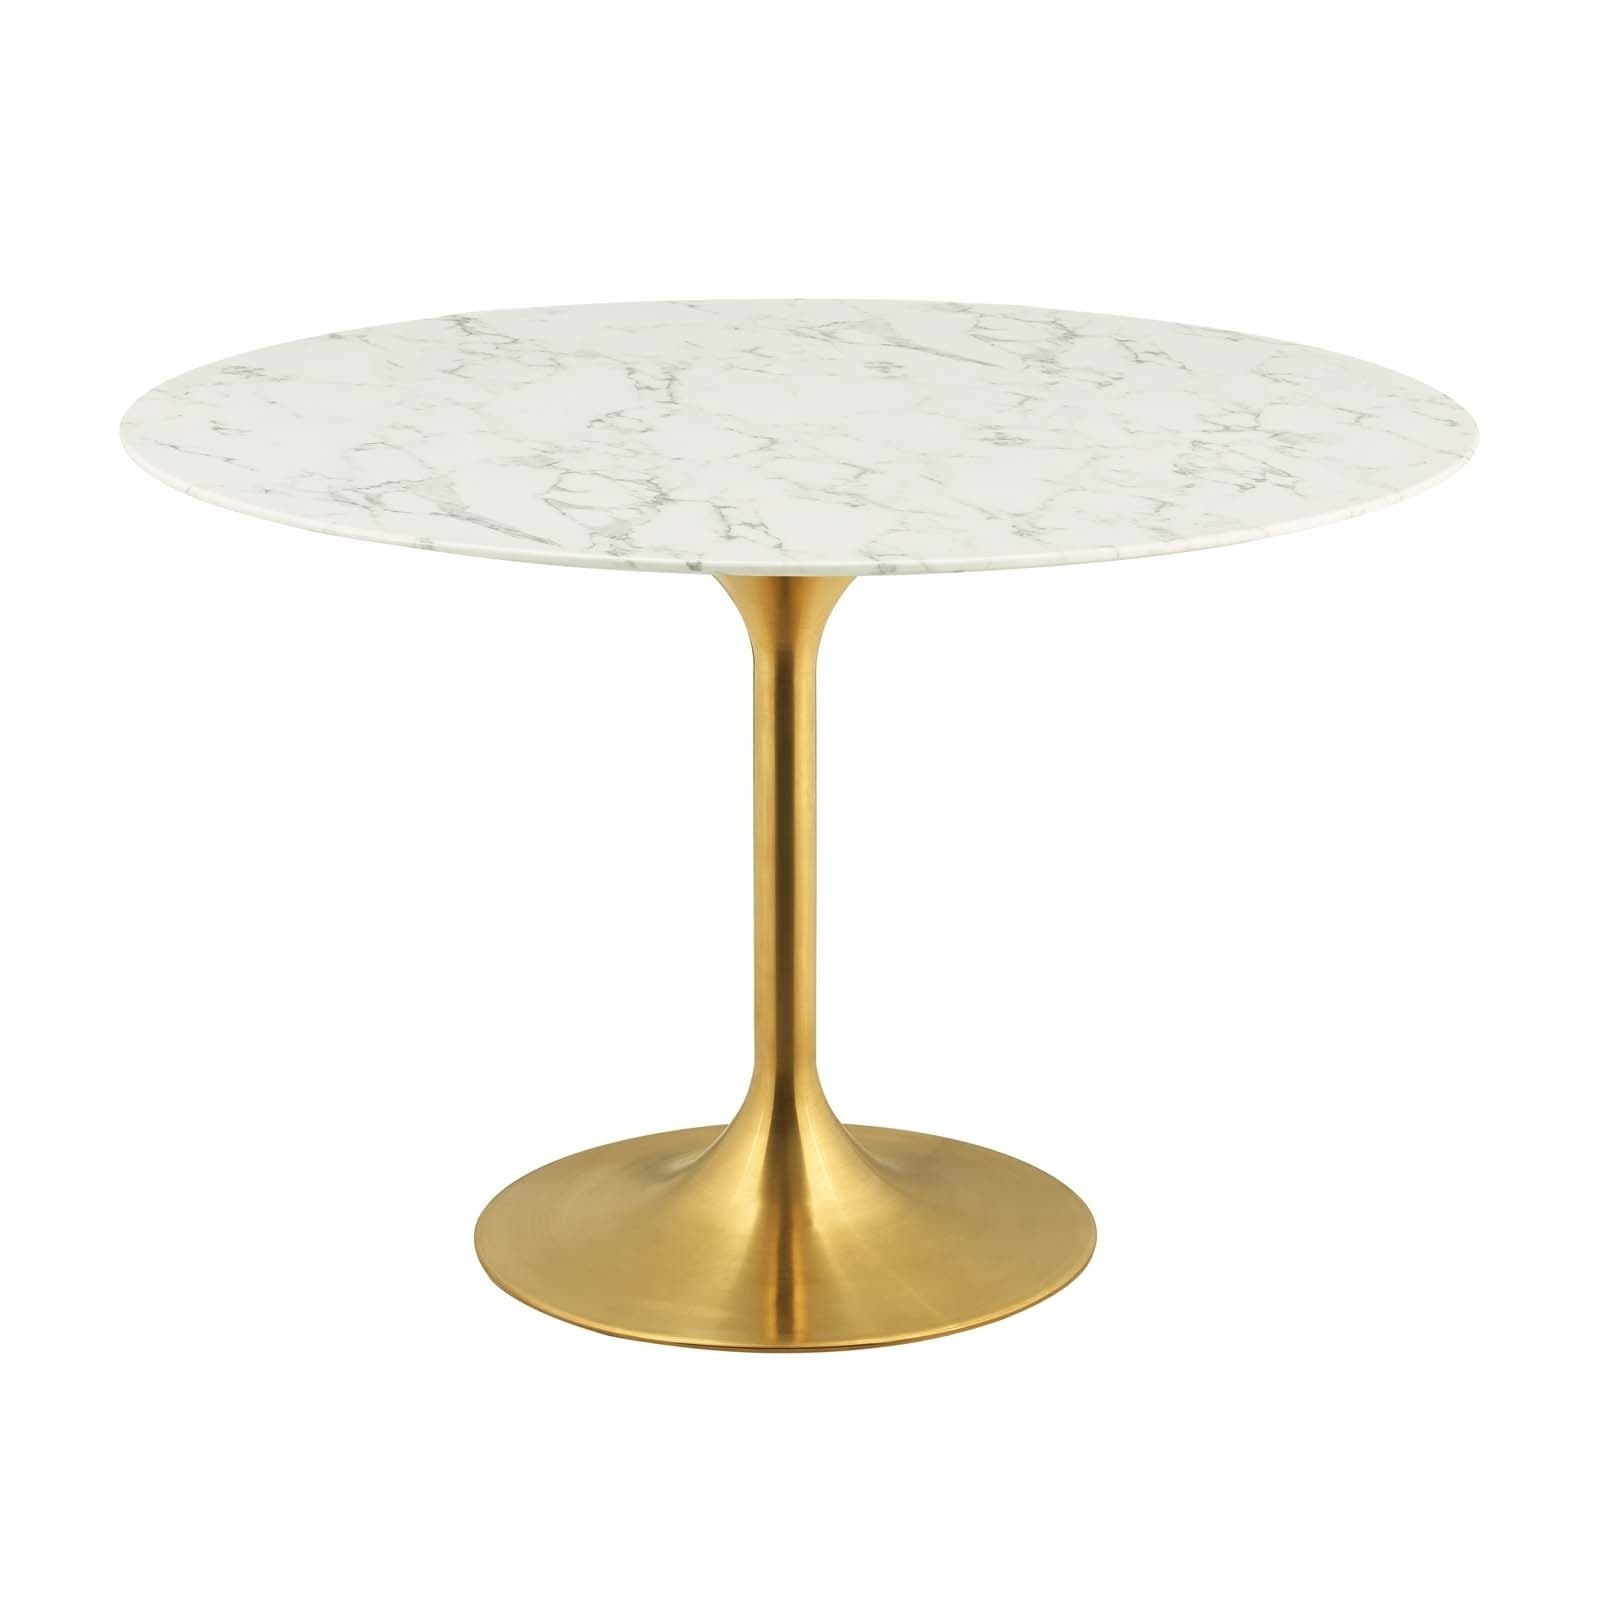 Lippa 47 Round Dining Table Gold White Free Shipping Today 25442676